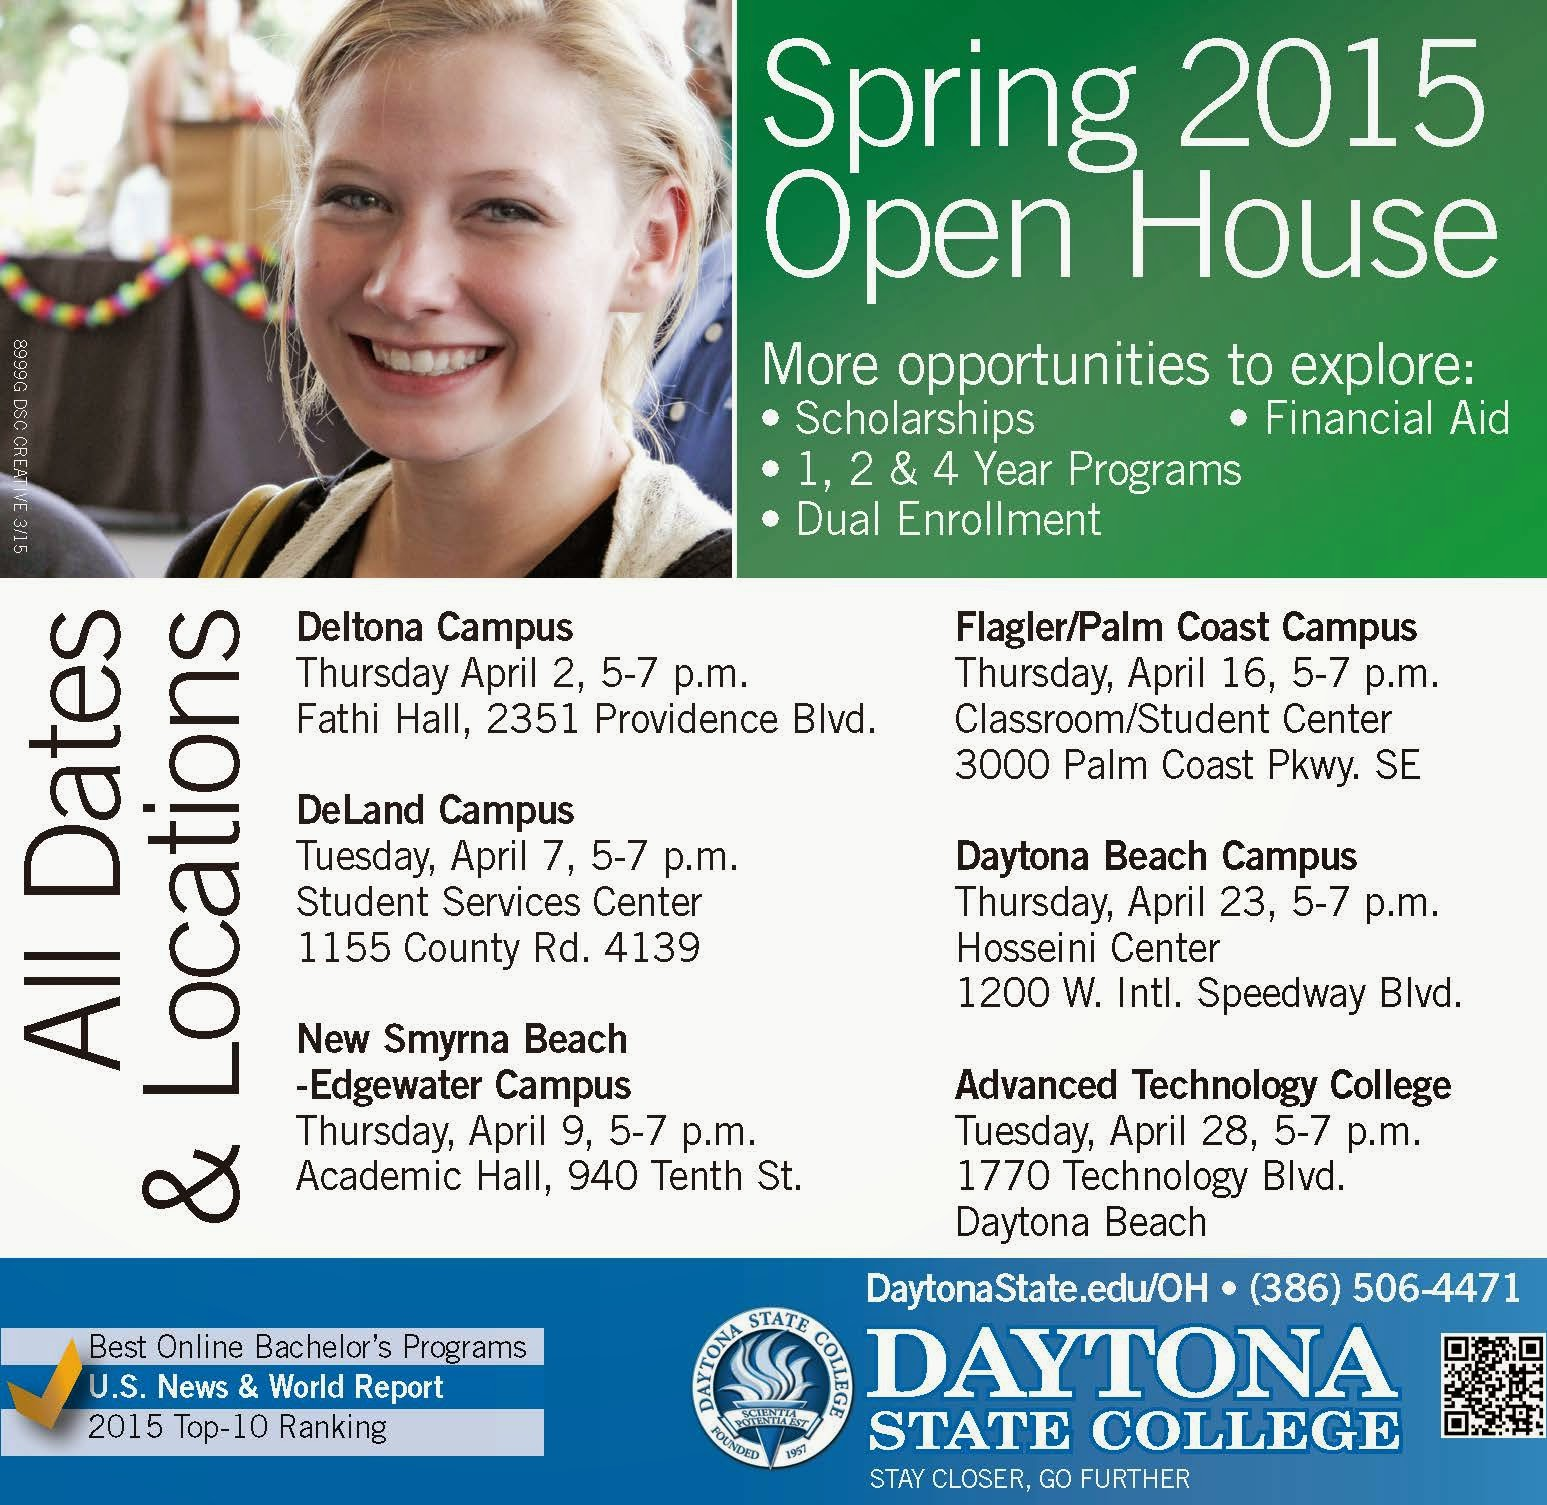 daytona state college financial aid